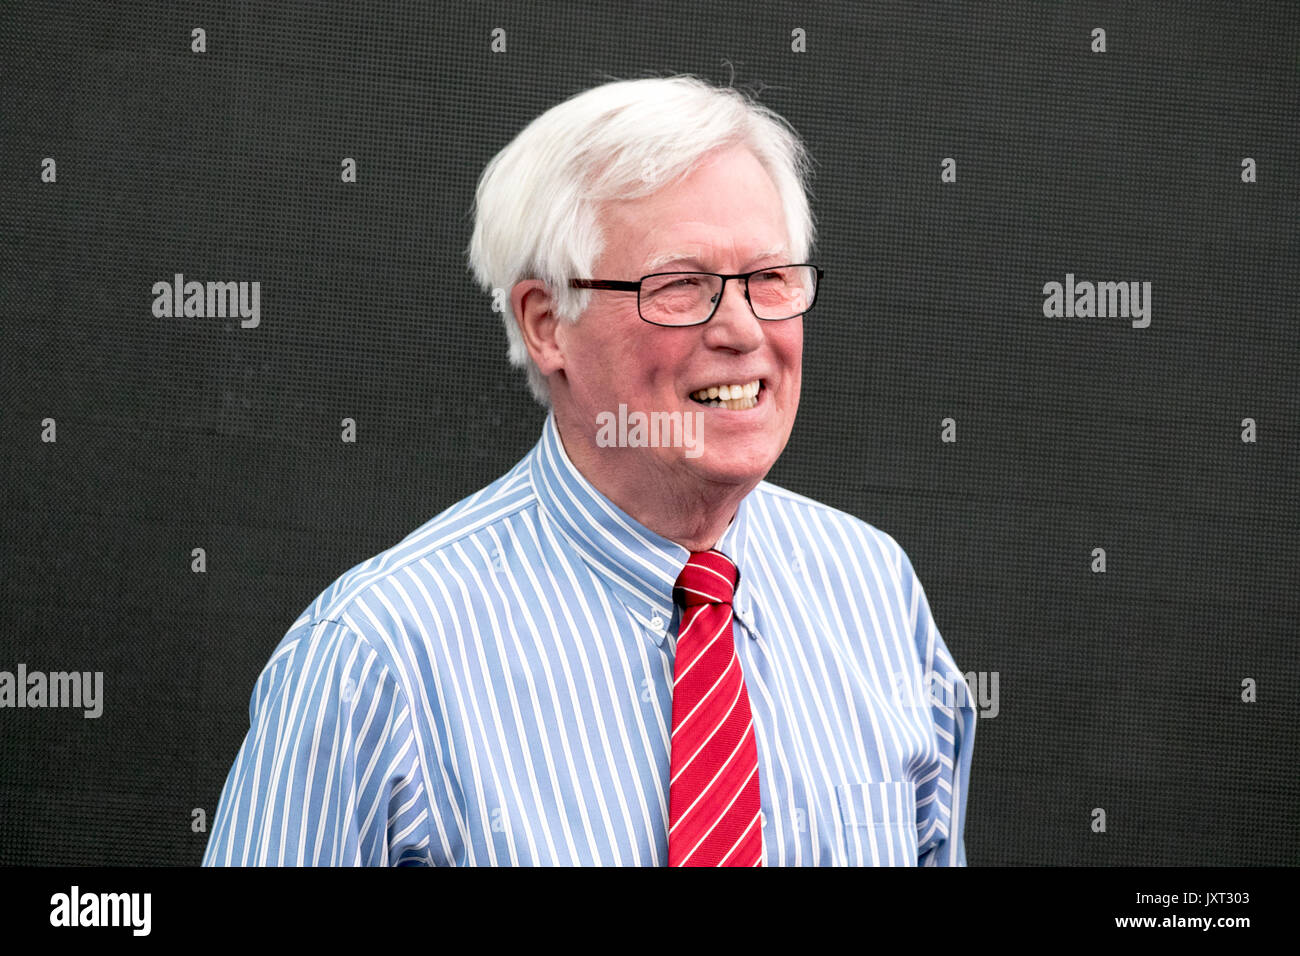 Southport, Merseyside, 17th August 2017. Flower Show.  Celebrity presenter John Craven is one of the special guests to appear at this year's annual flower show at Southport in Merseyside.  Broadcaster John, is one of the BBC's best known TV presenters & has been a regular fixture on our screens for over 45 years.  Credit: Cernan Elias/Alamy Live News - Stock Image